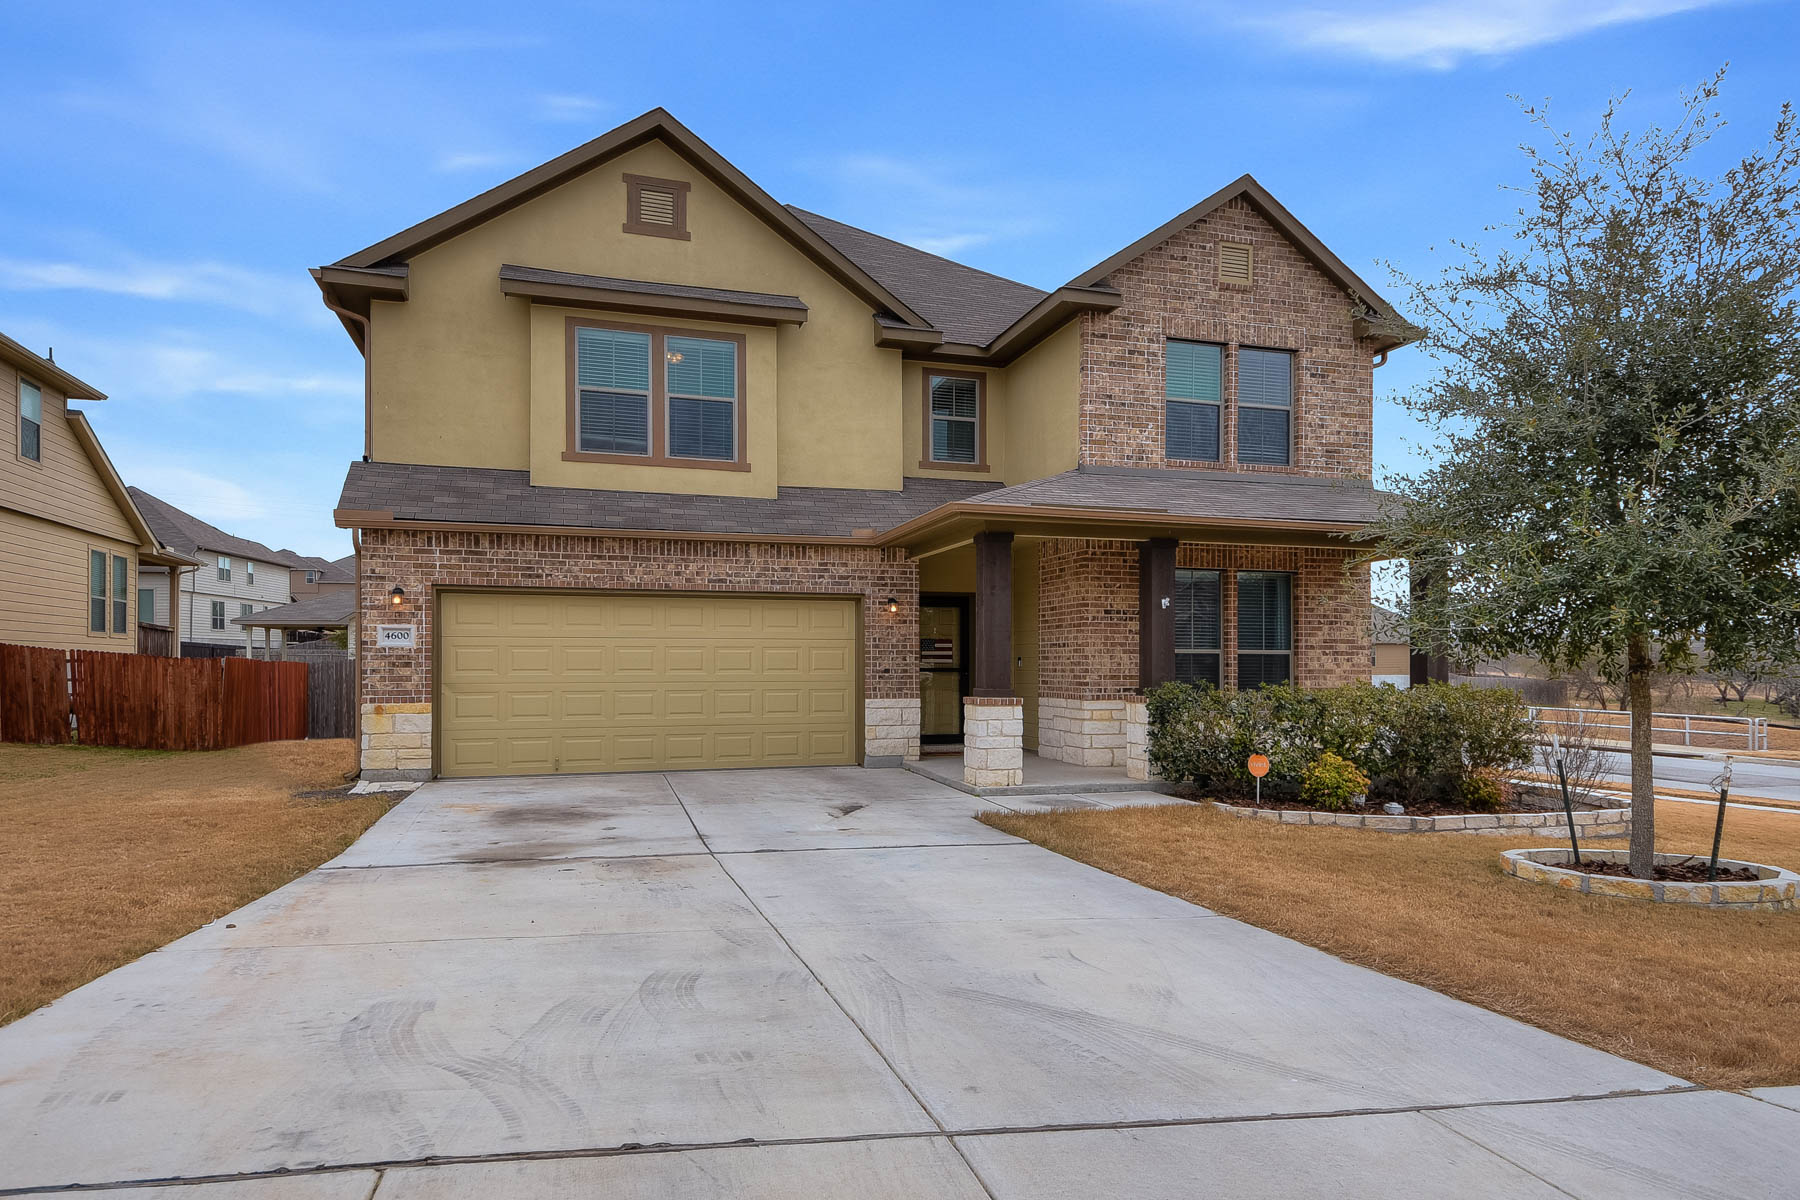 Single Family Home for Sale at Elegant and Well-Maintained Home 4600 Starwood Street Schertz, Texas 78154 United States